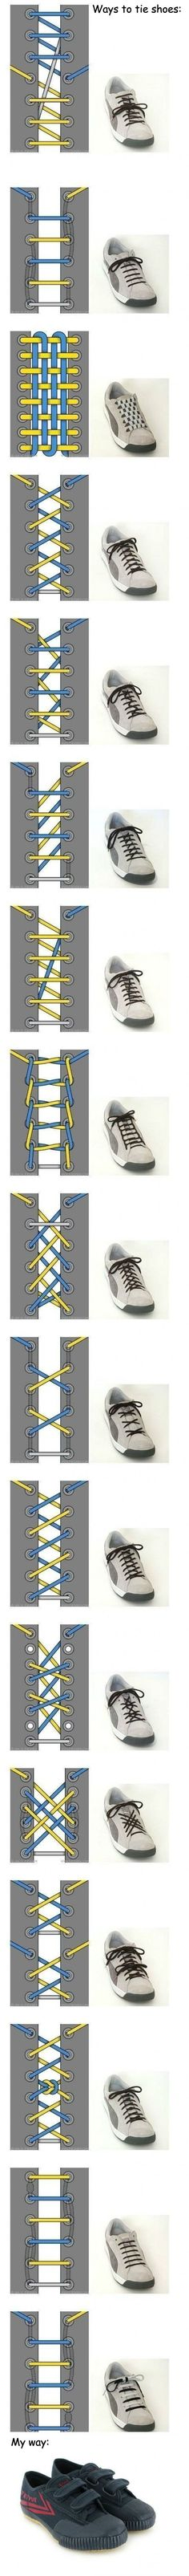 32b09ef6a874 Several ways to tie shoes.